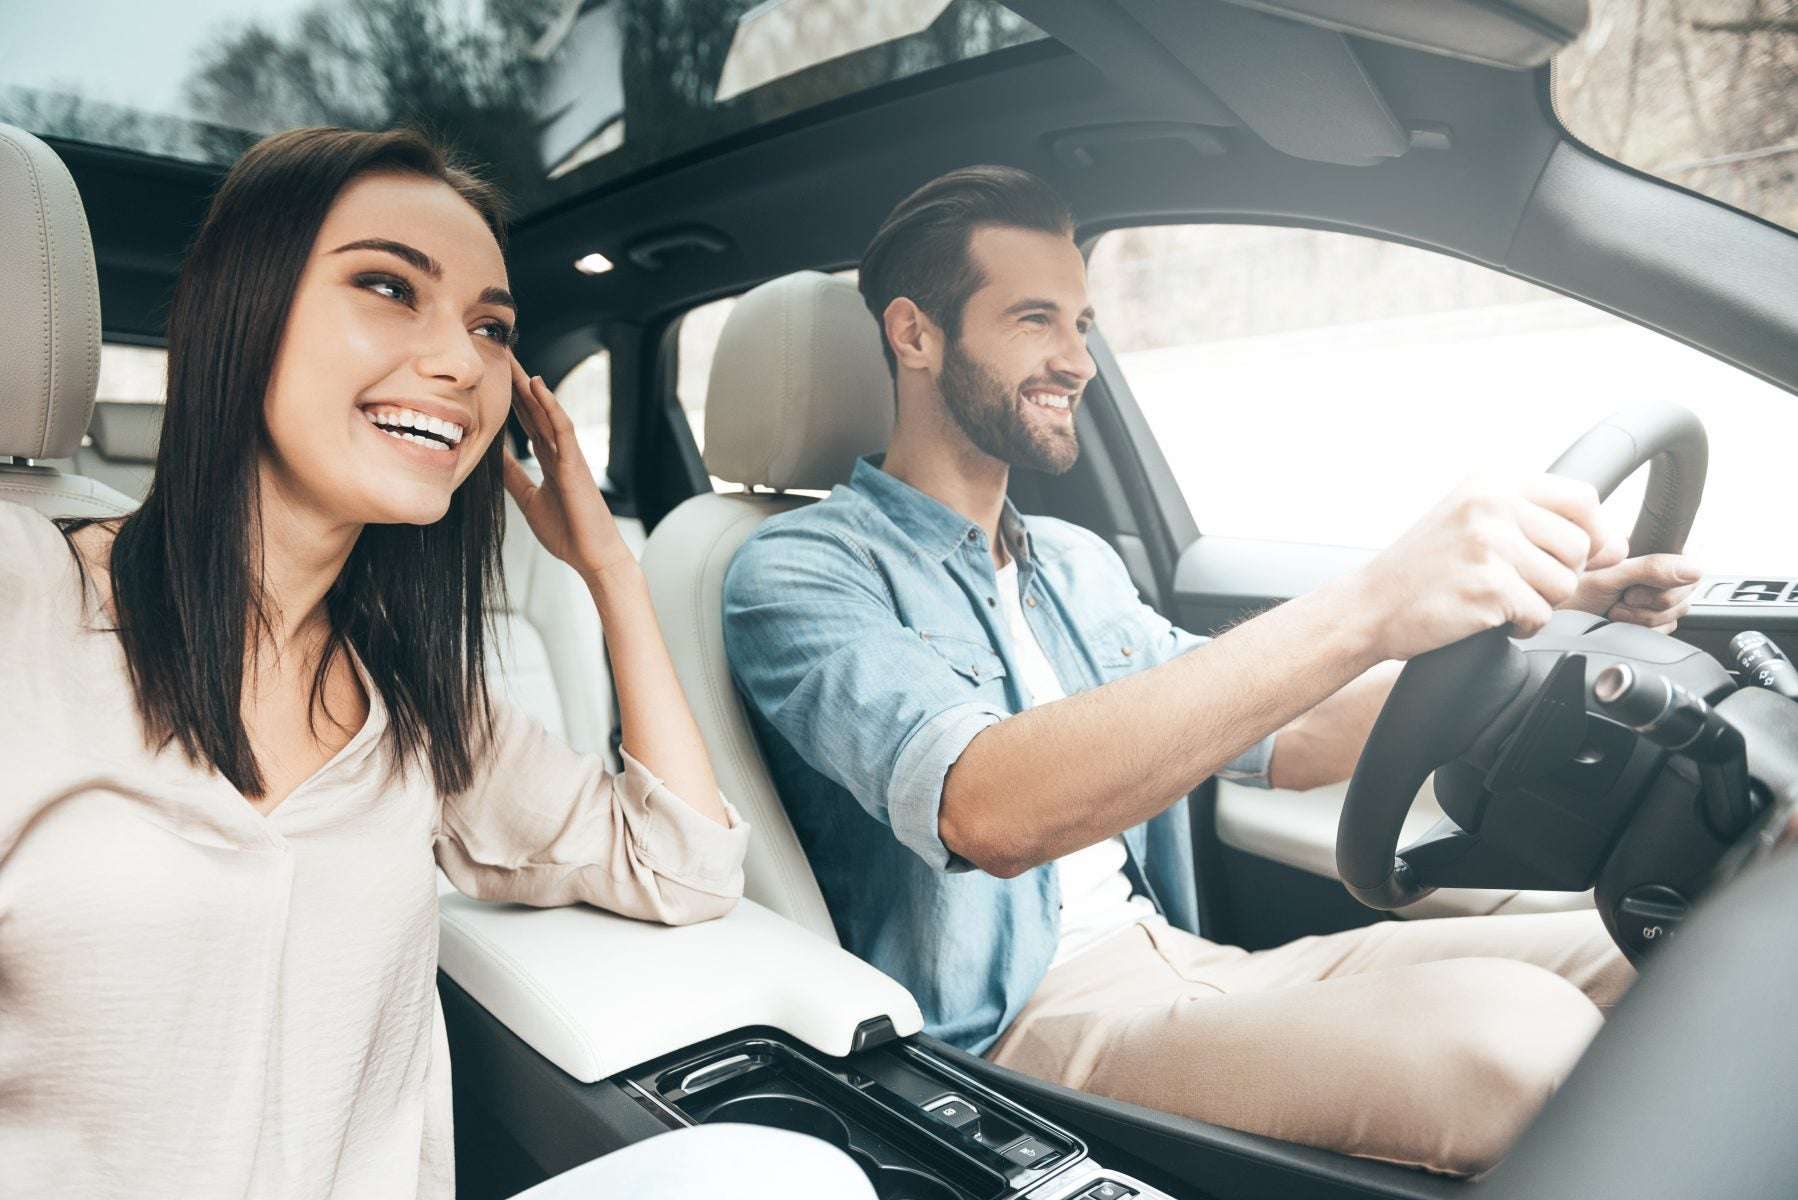 Autoslash Review: If You're Not Using This Site to Save Money on Car Rentals, You're Doing It Wrong